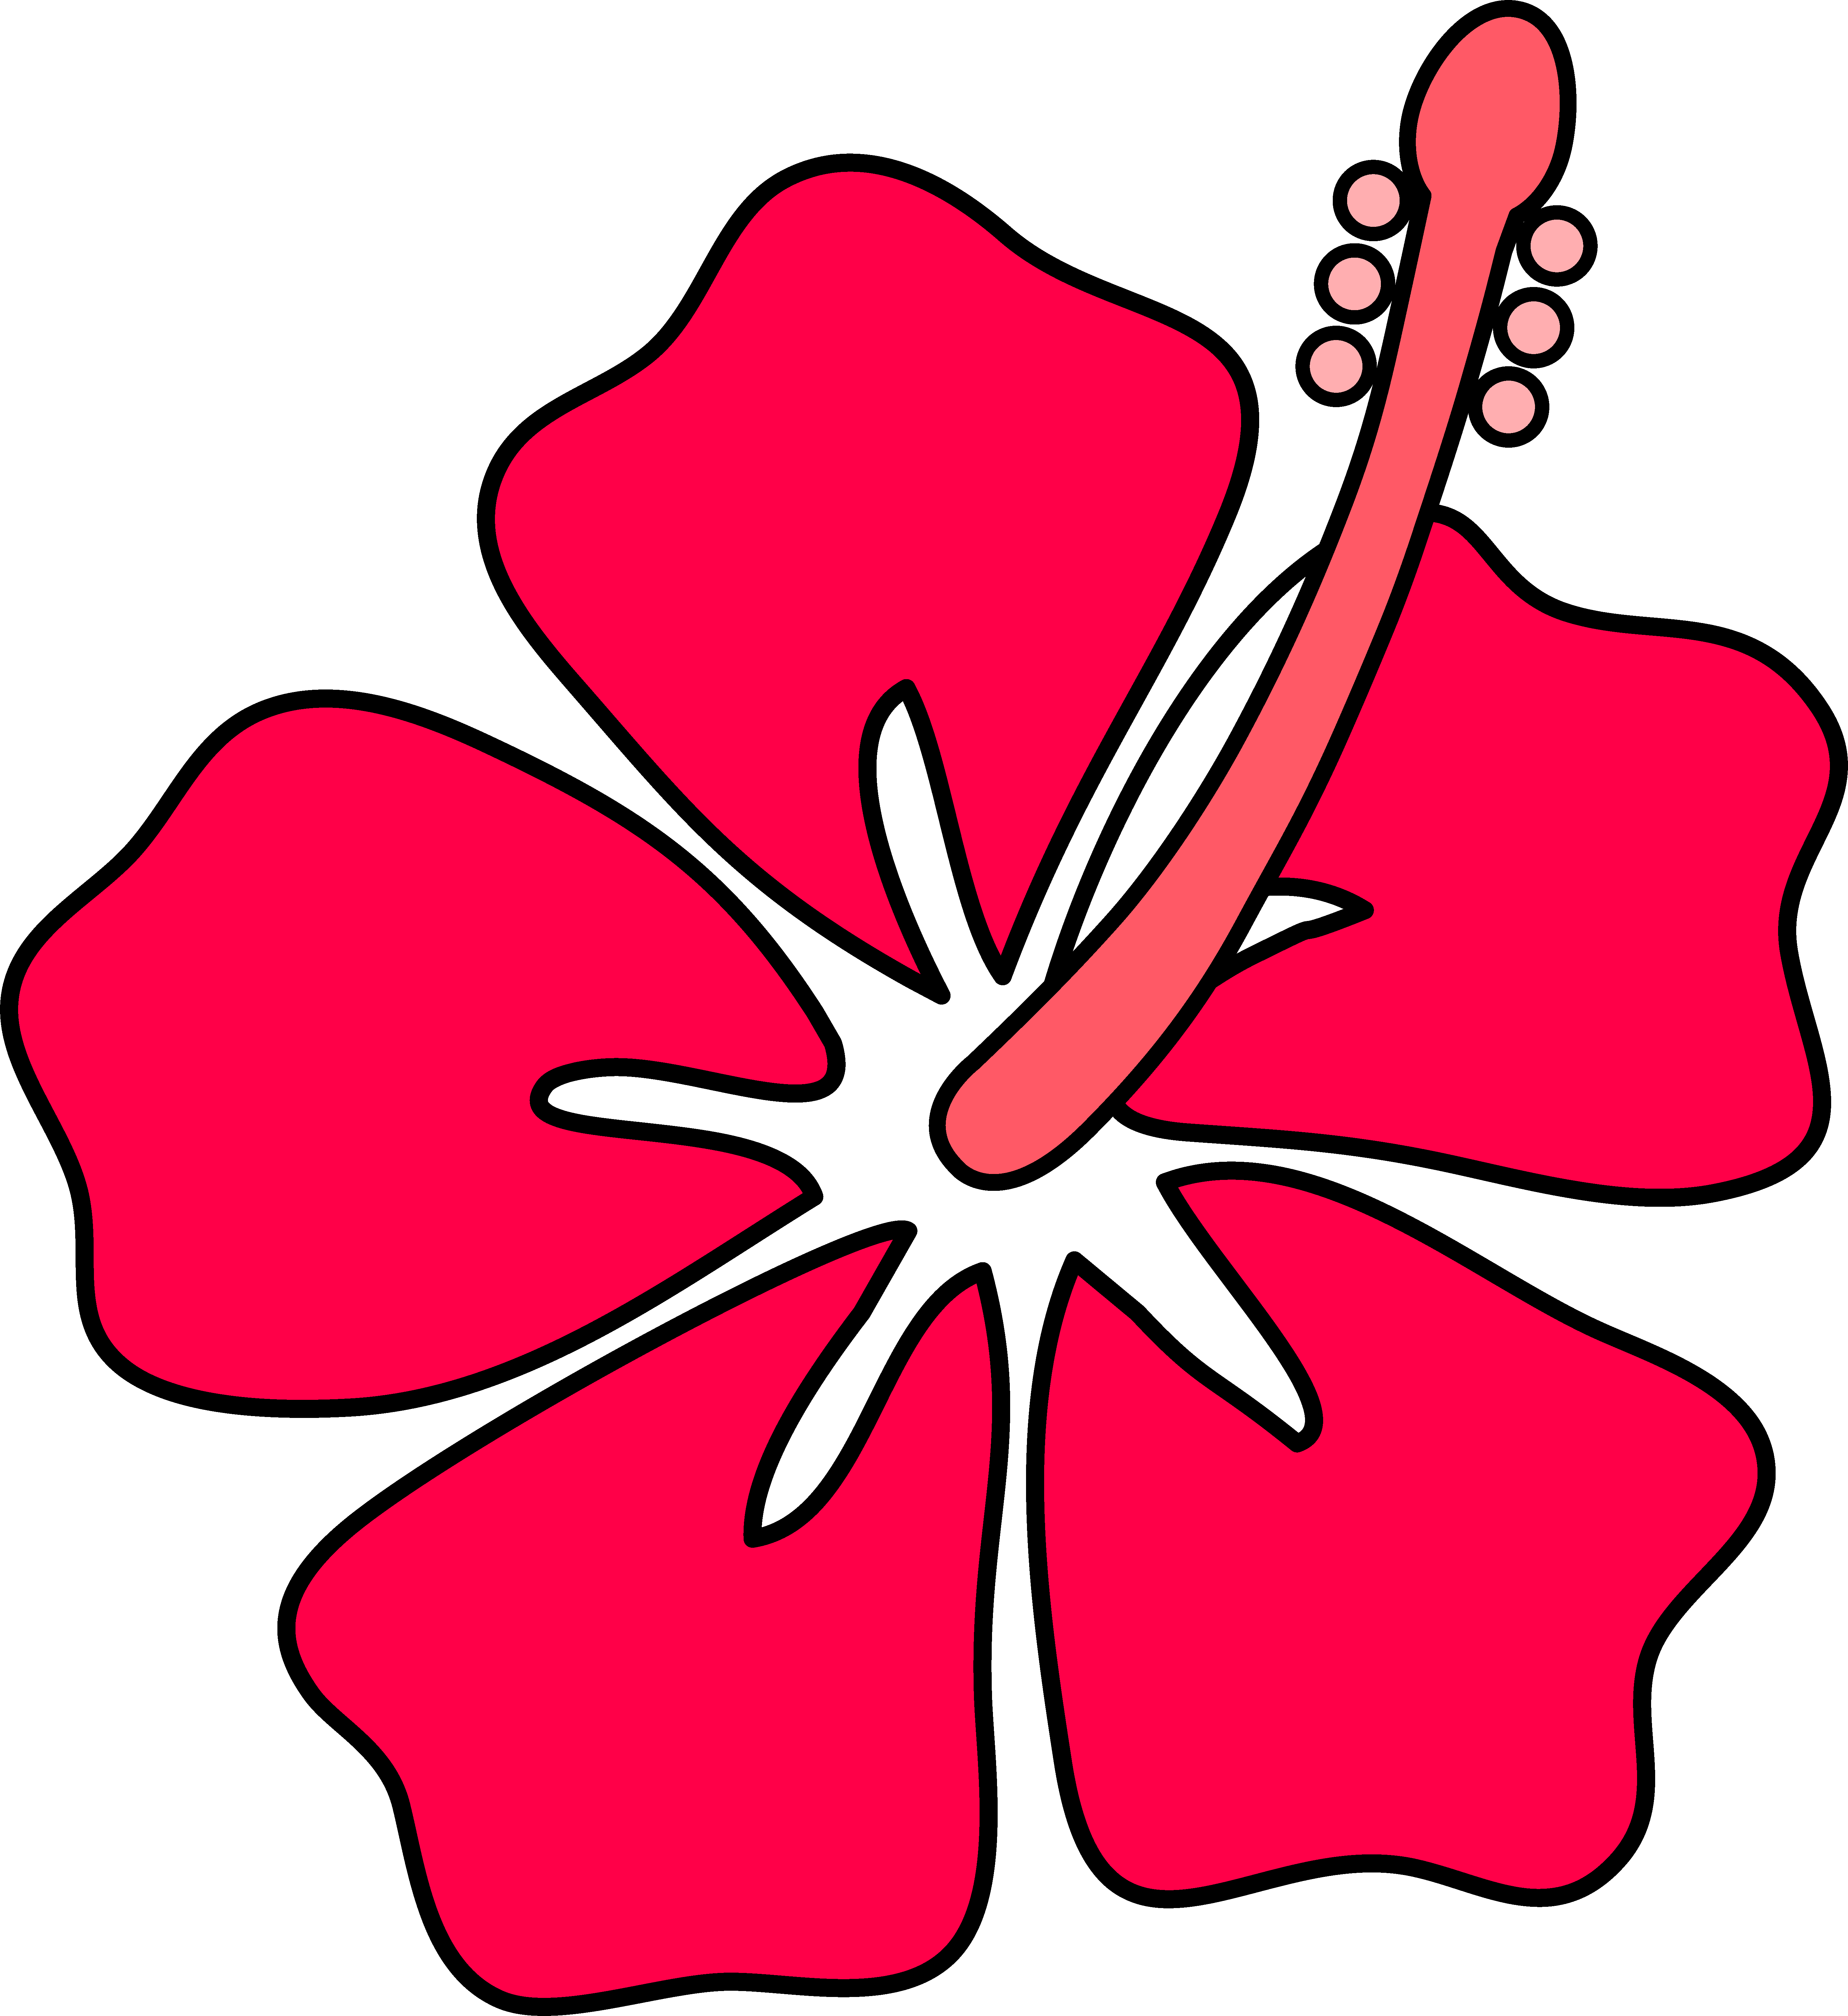 Red Flower clipart outline #13